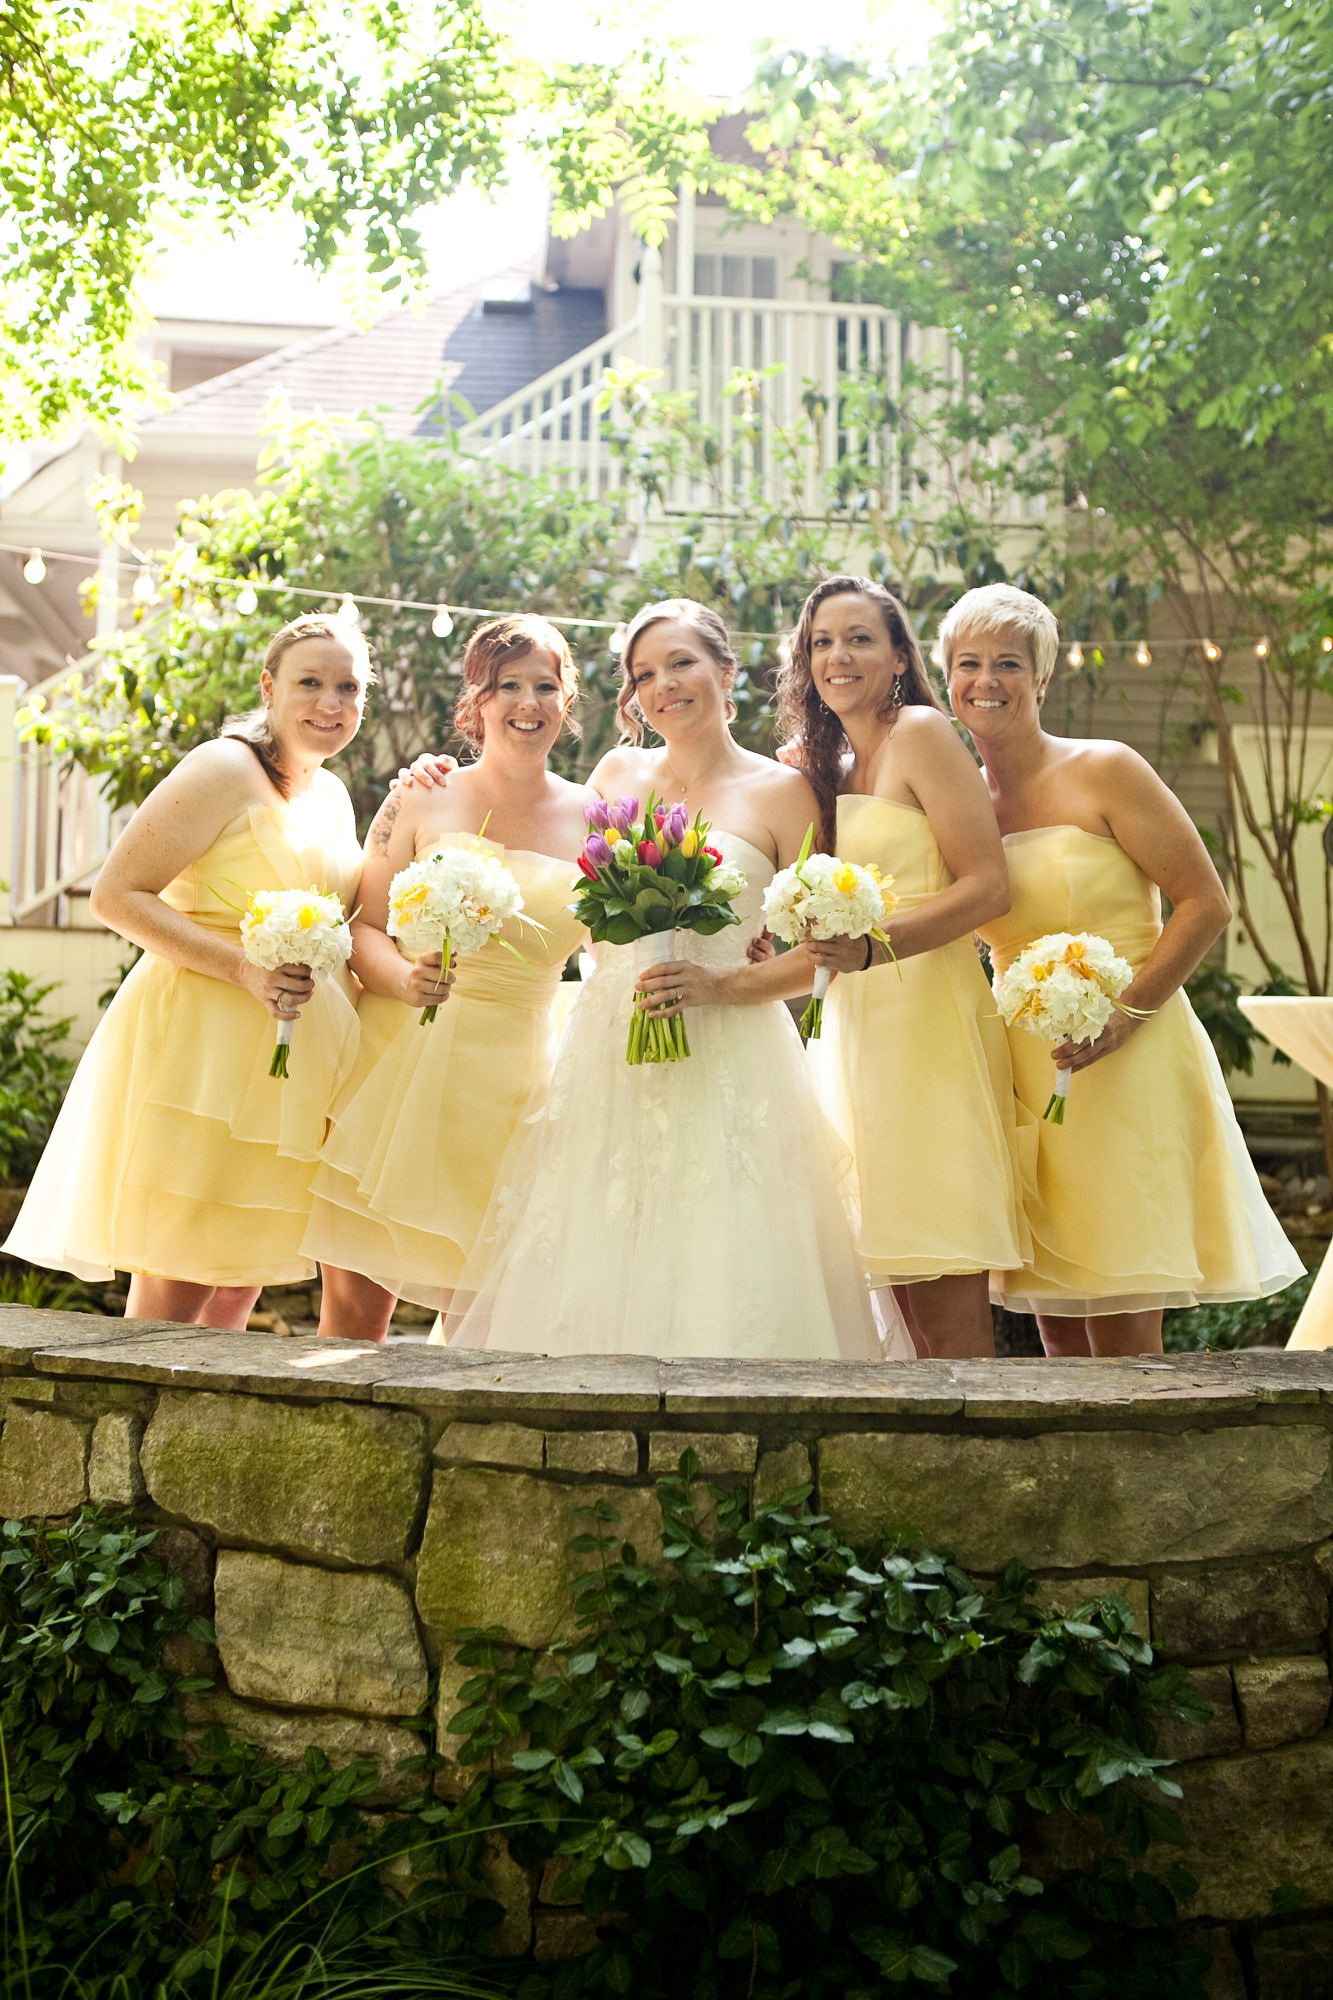 Nashville garden wedding pale yellow bridesmaid dresses photo nashville garden wedding pale yellow bridesmaid dresses photo mandy whitley weddings ombrellifo Images